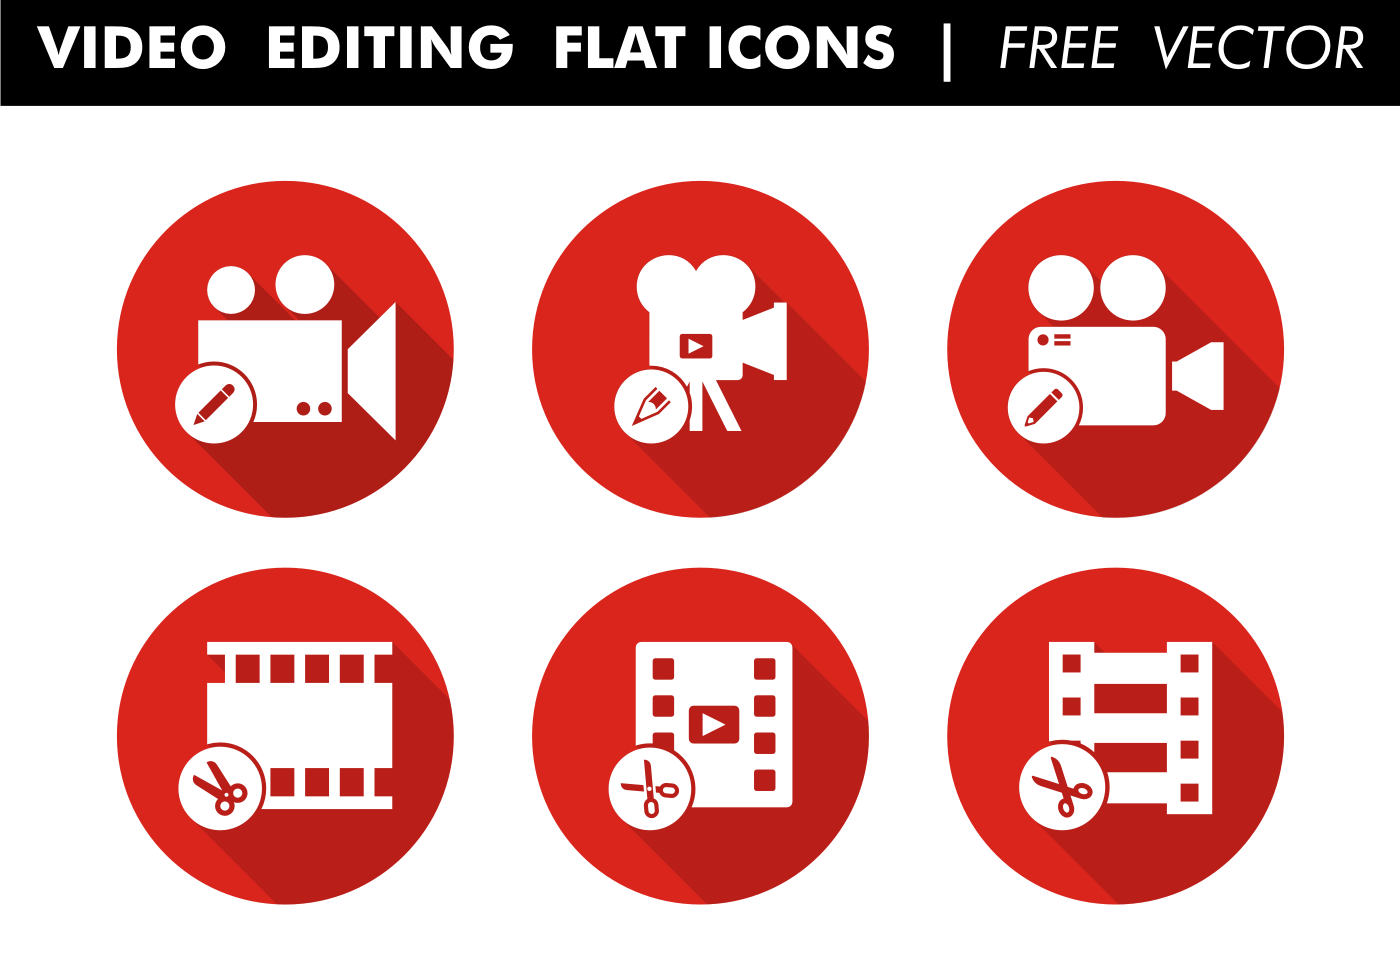 Video editing icon four 571 investingbb Online vector editor